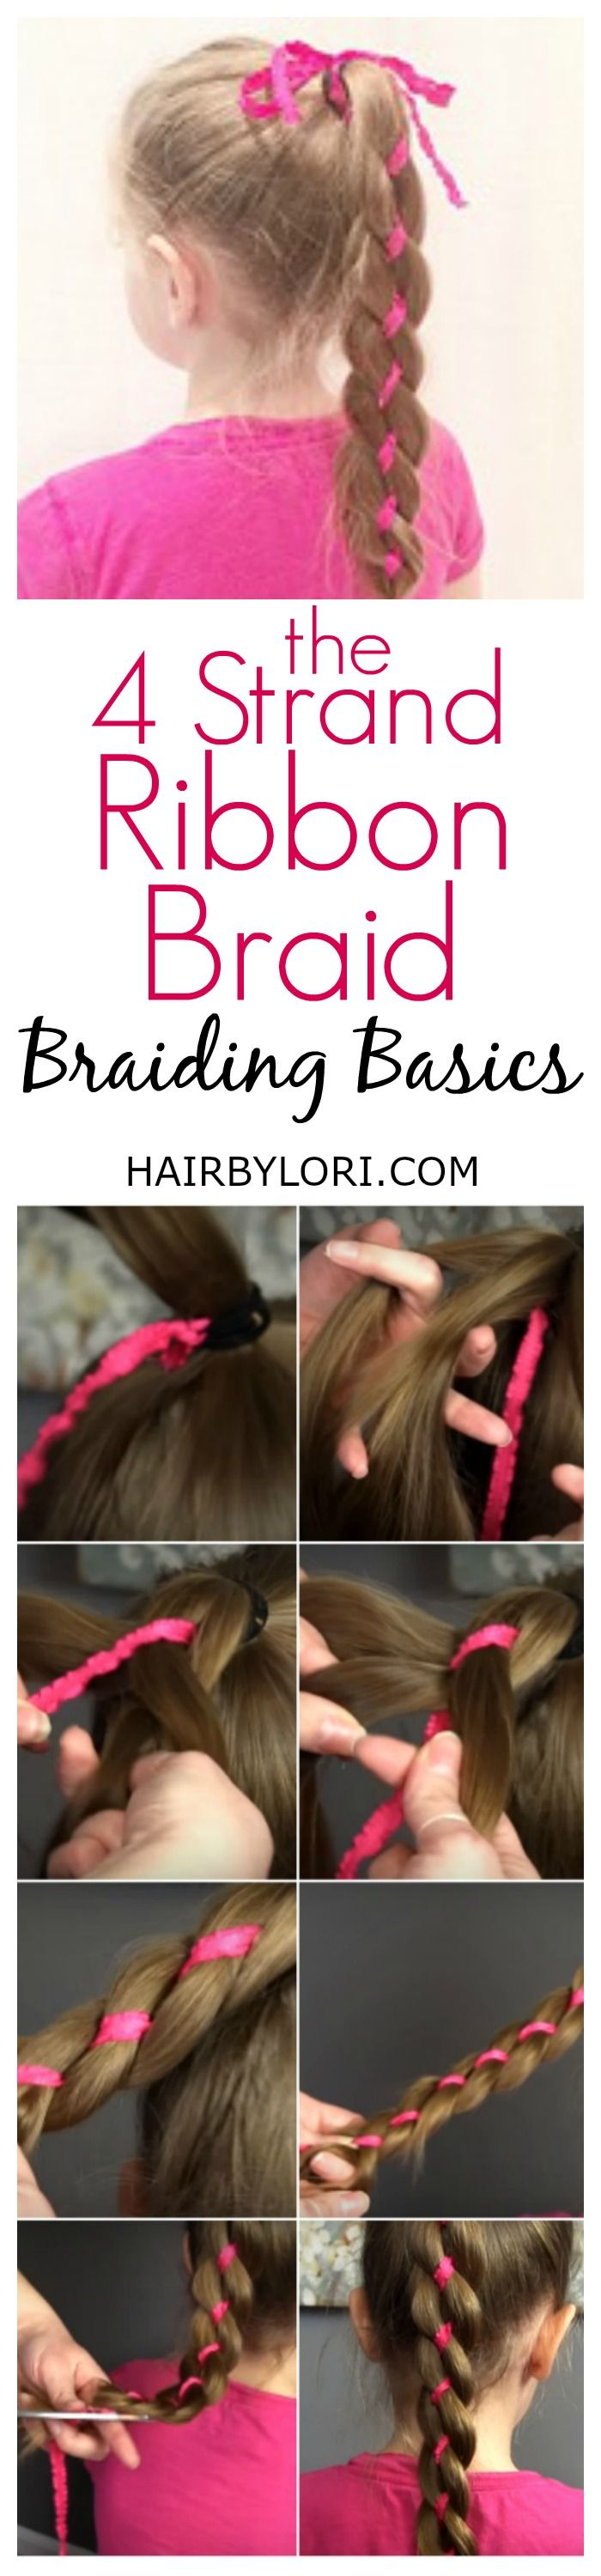 39 best School Hairstyles images on Pinterest